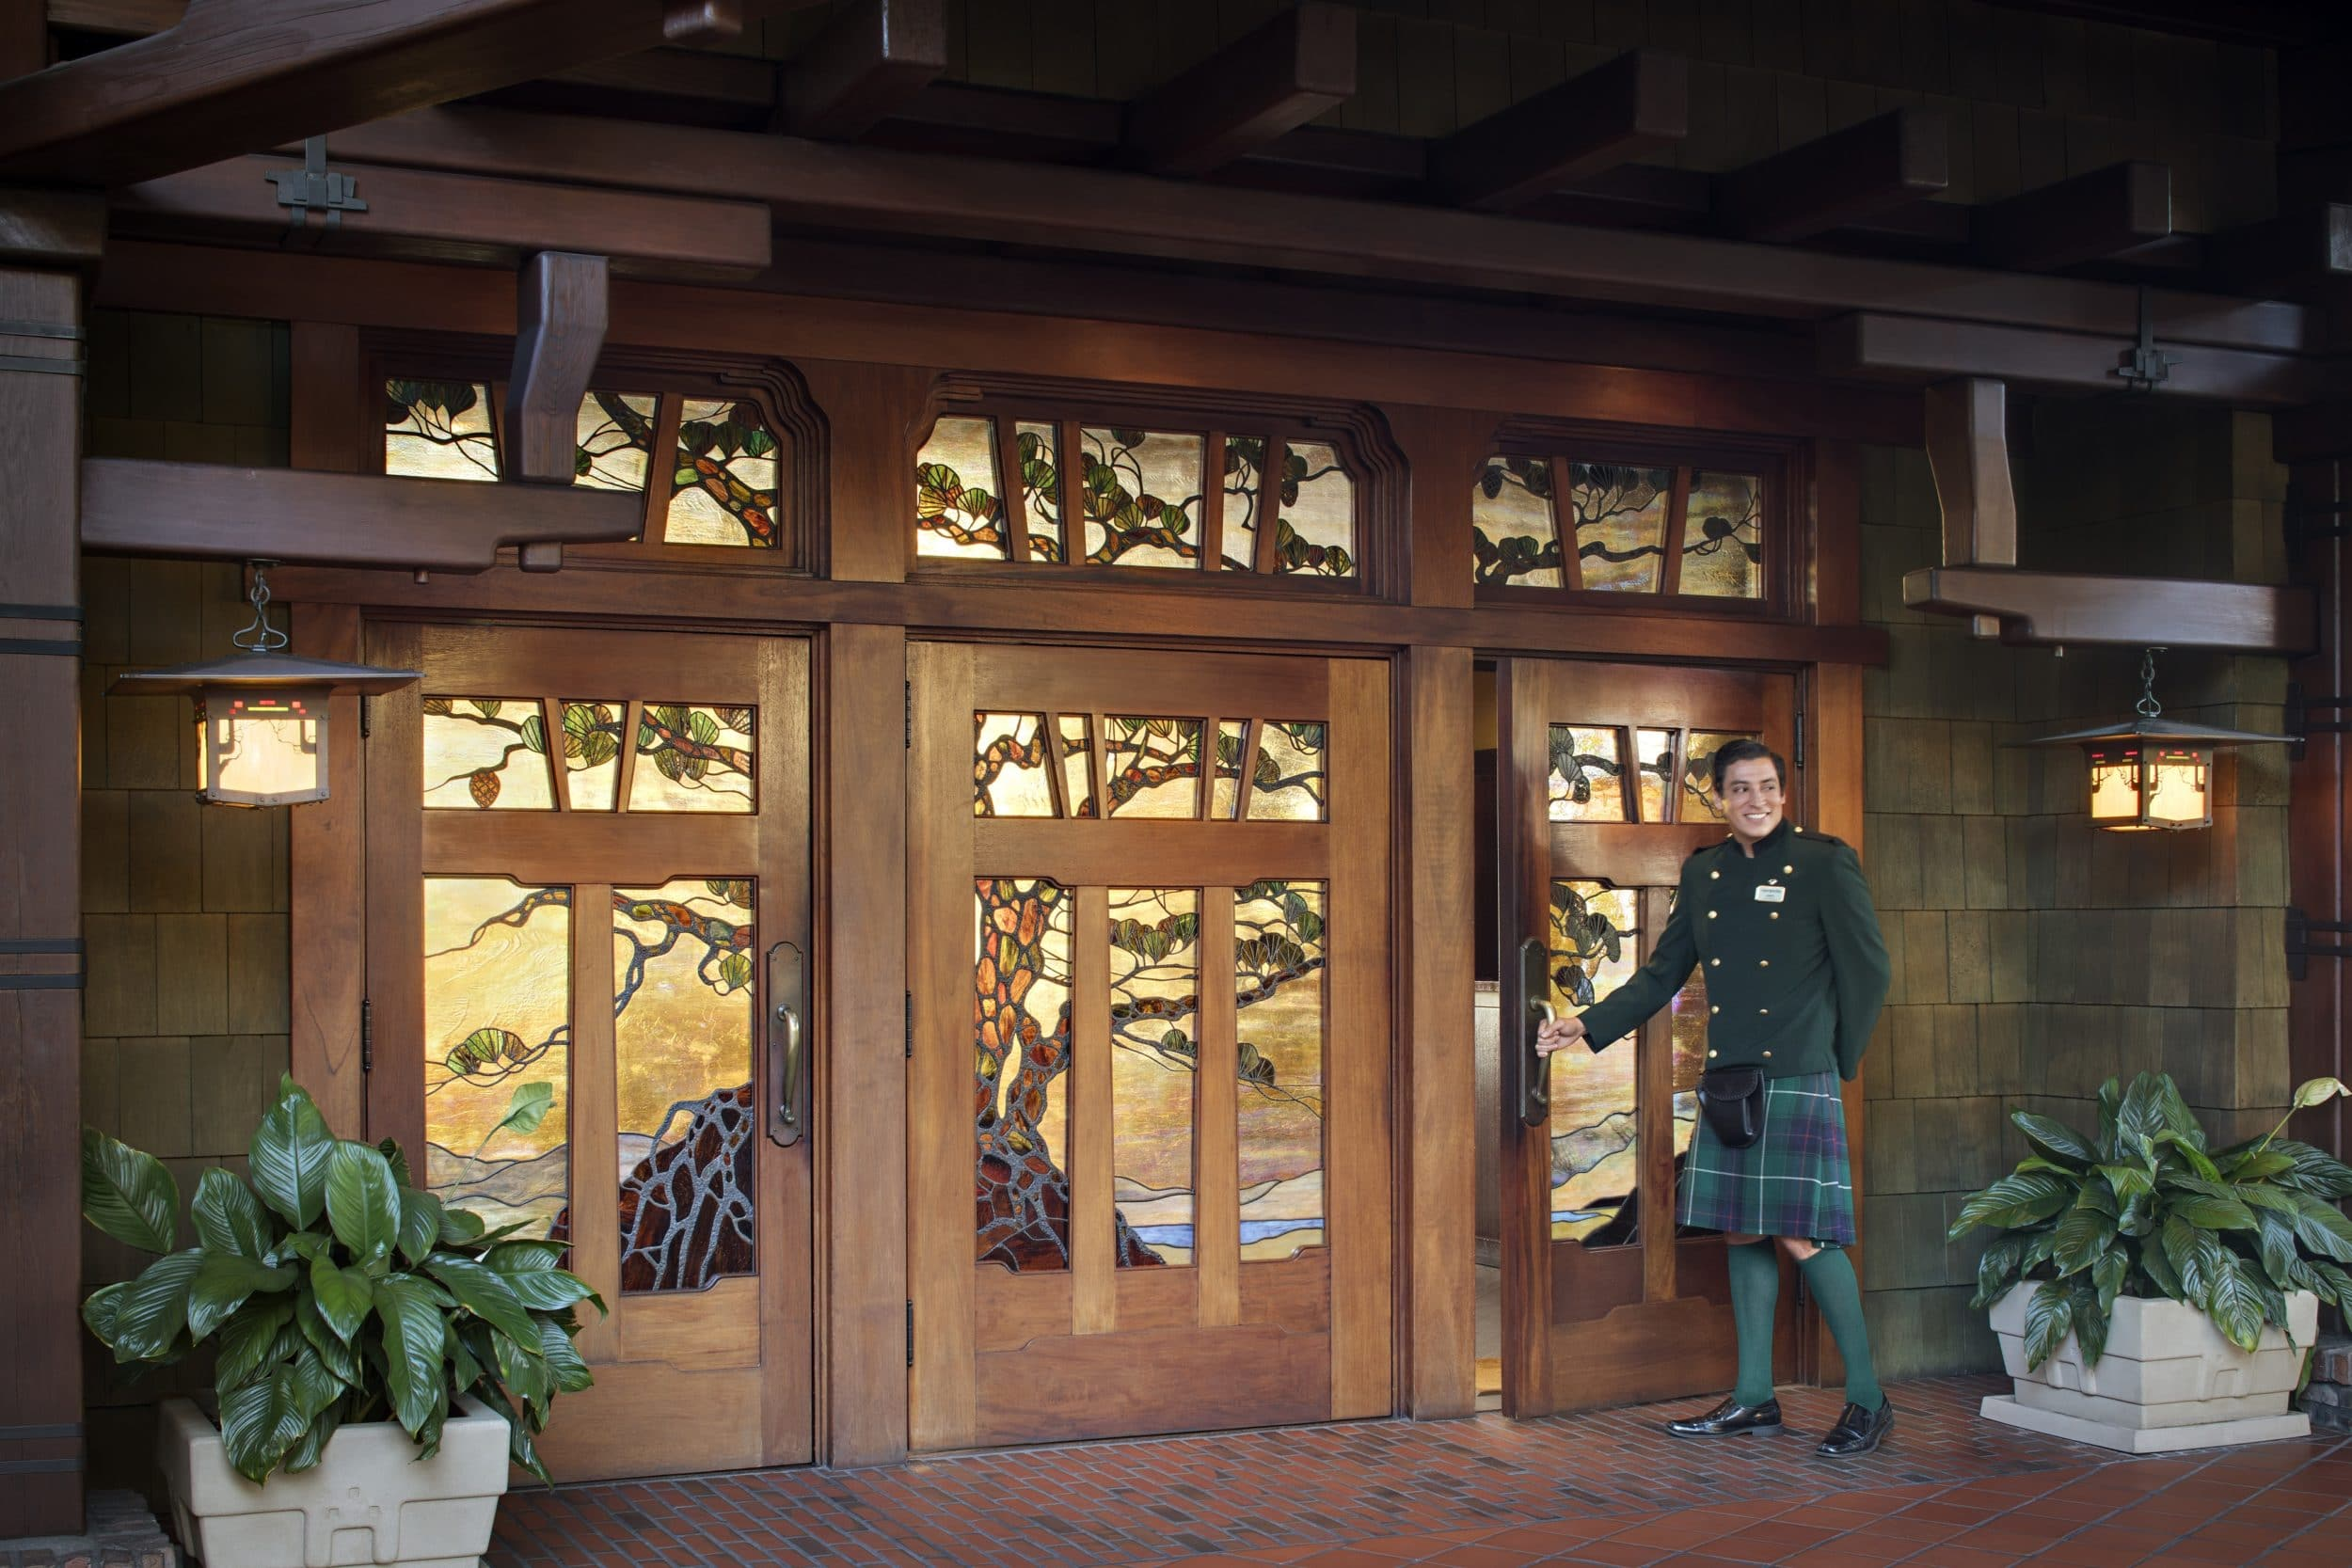 A kilted doorman opens the stained glass door to the lobby at The Lodge at Torrey Pines